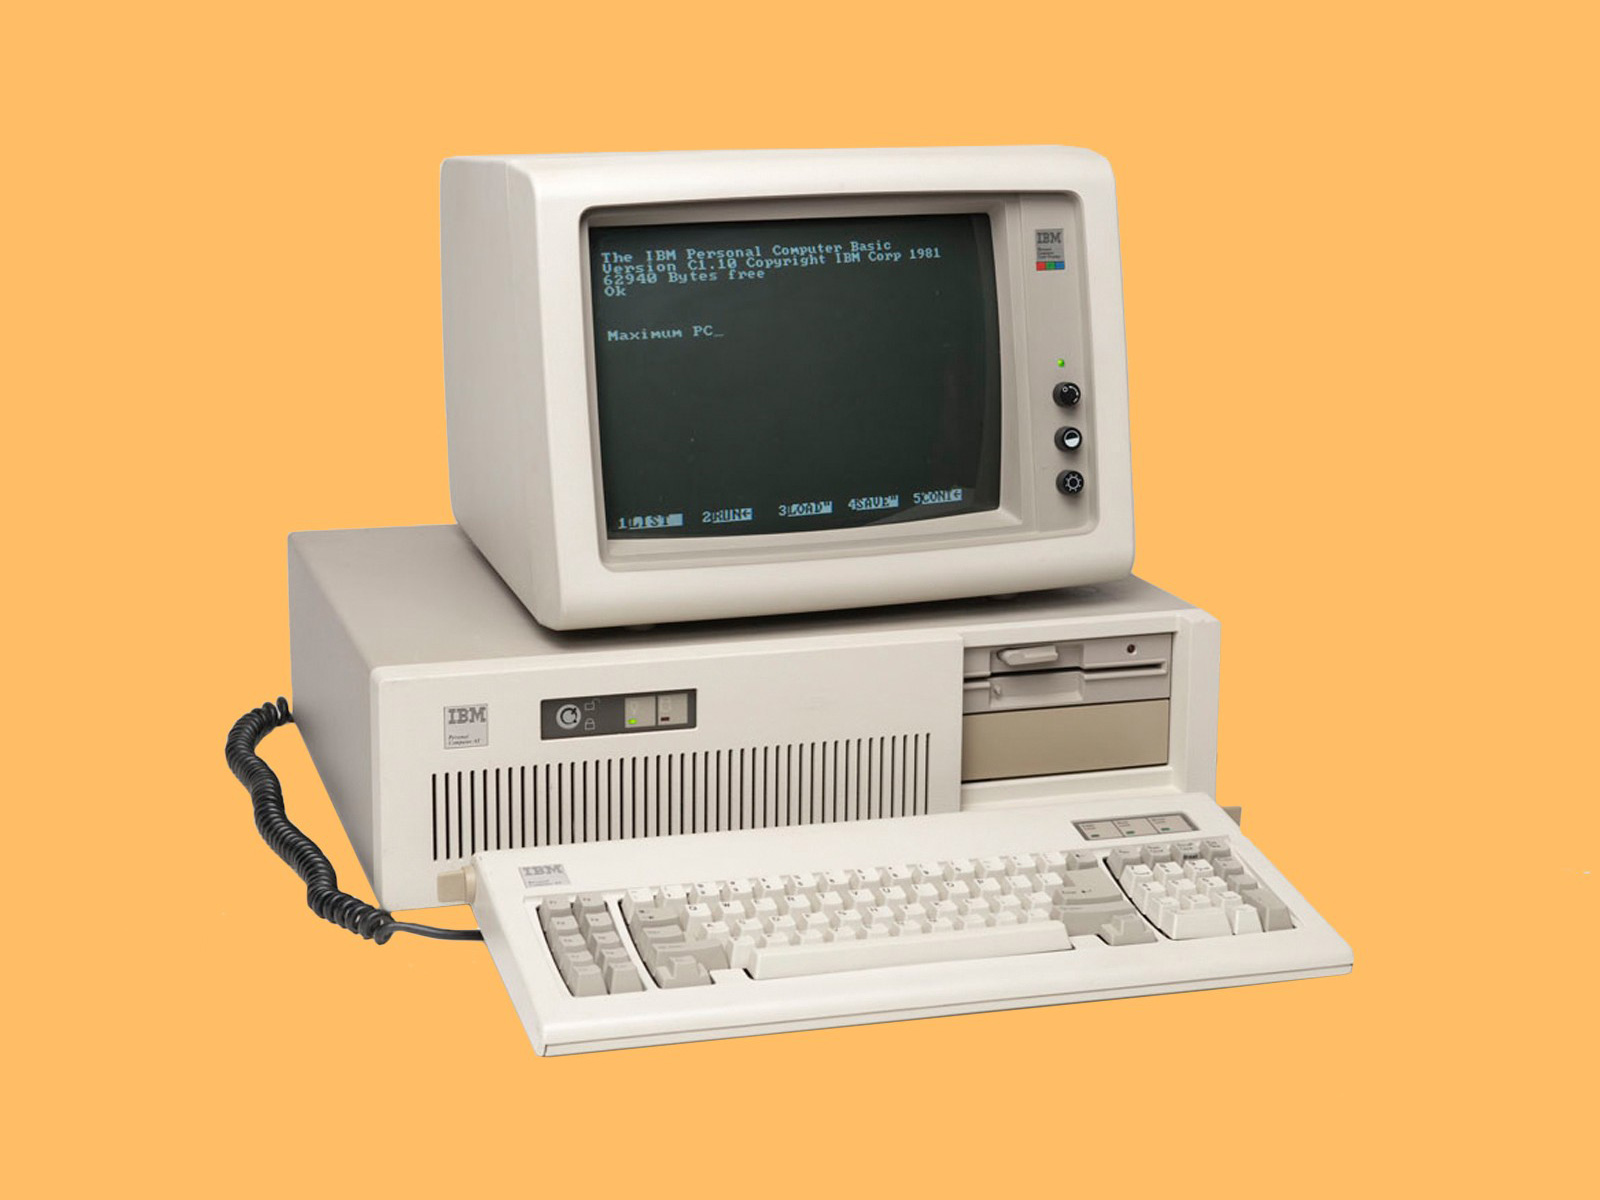 IBM PC AT 286